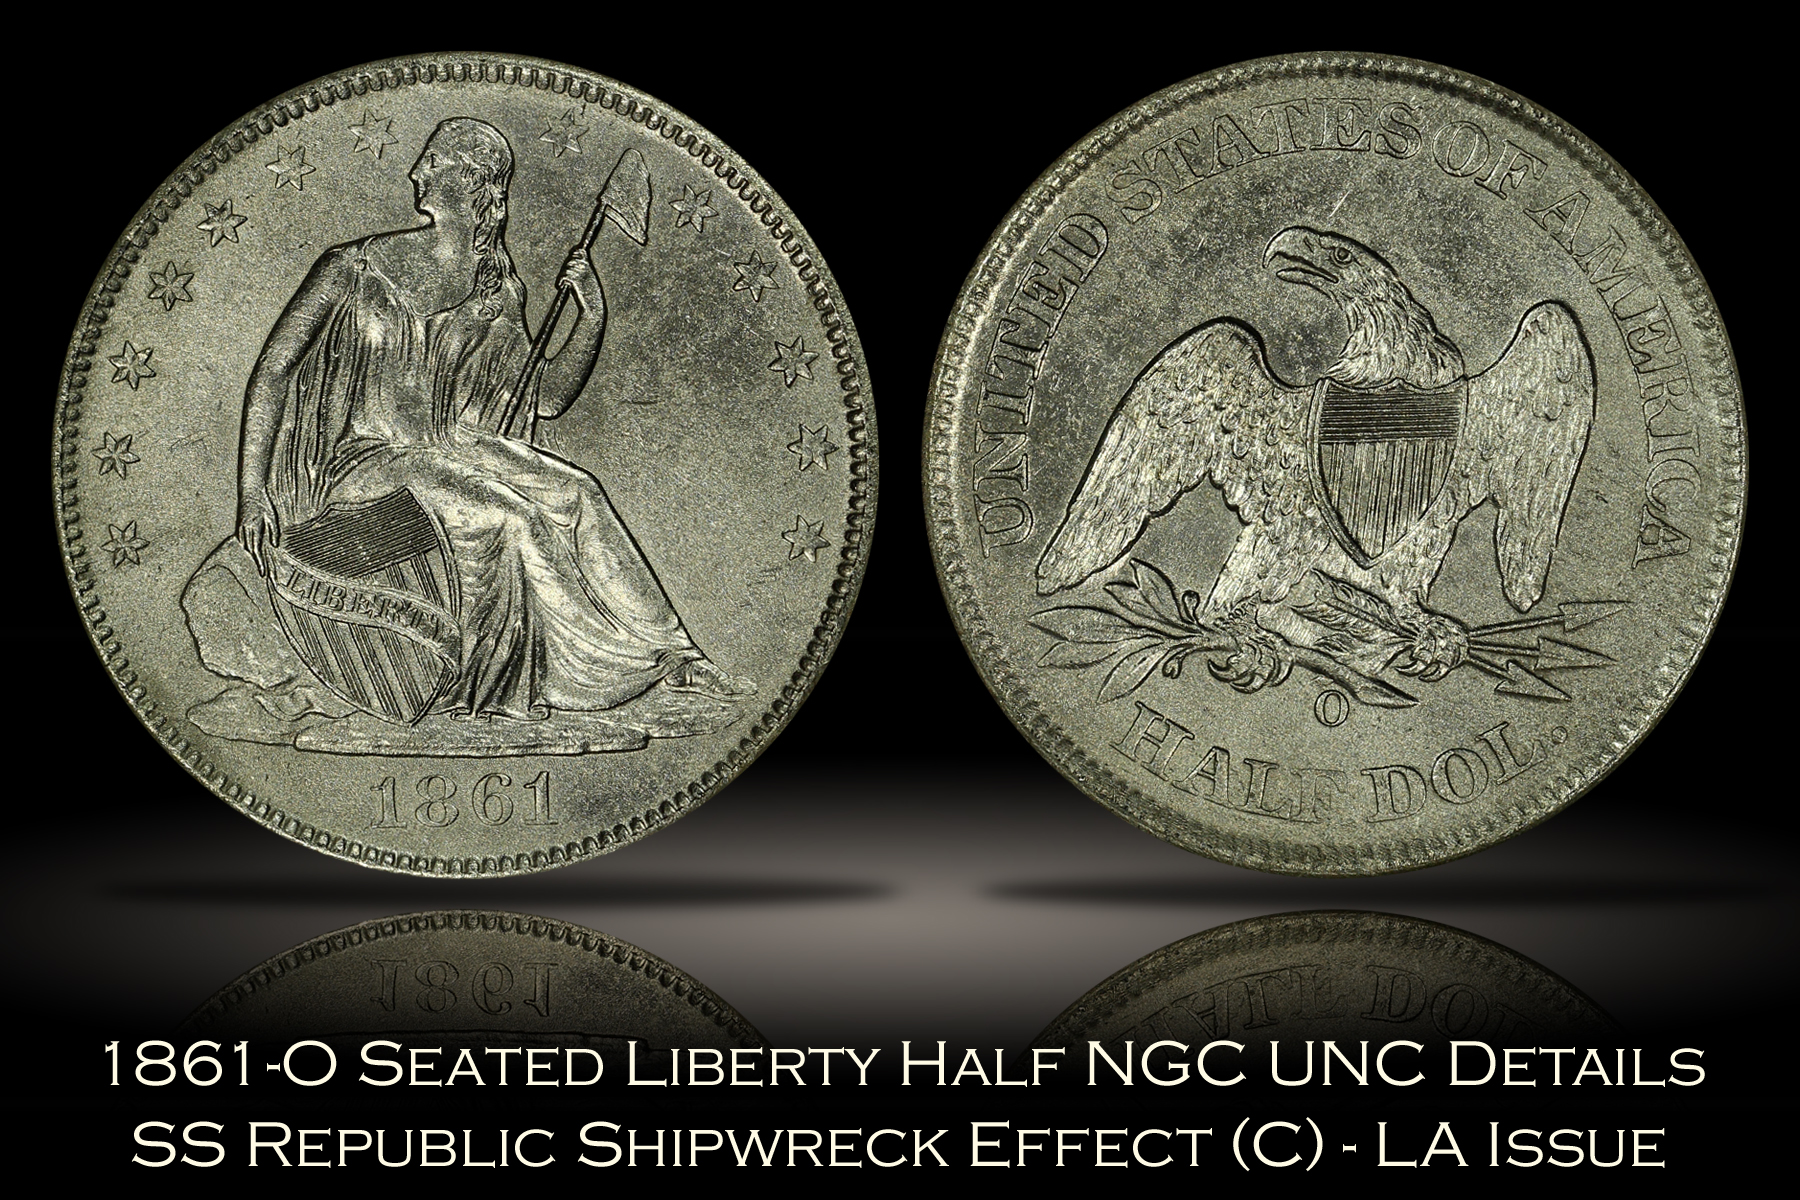 1861-O Seated Half Louisiana Issue SS Republic NGC Shipwreck Effect (C) UNC Details